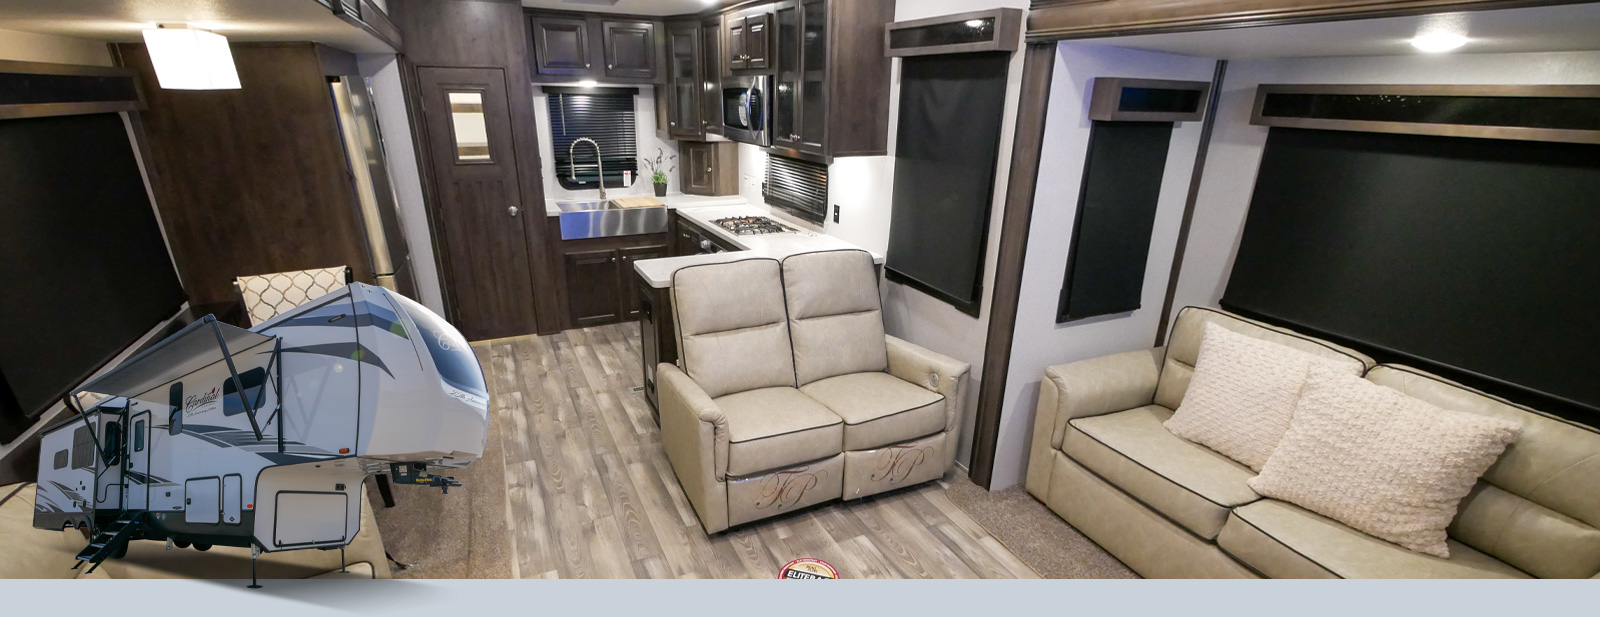 Cardinal Explorer Fifth Wheels by Forest River RV on